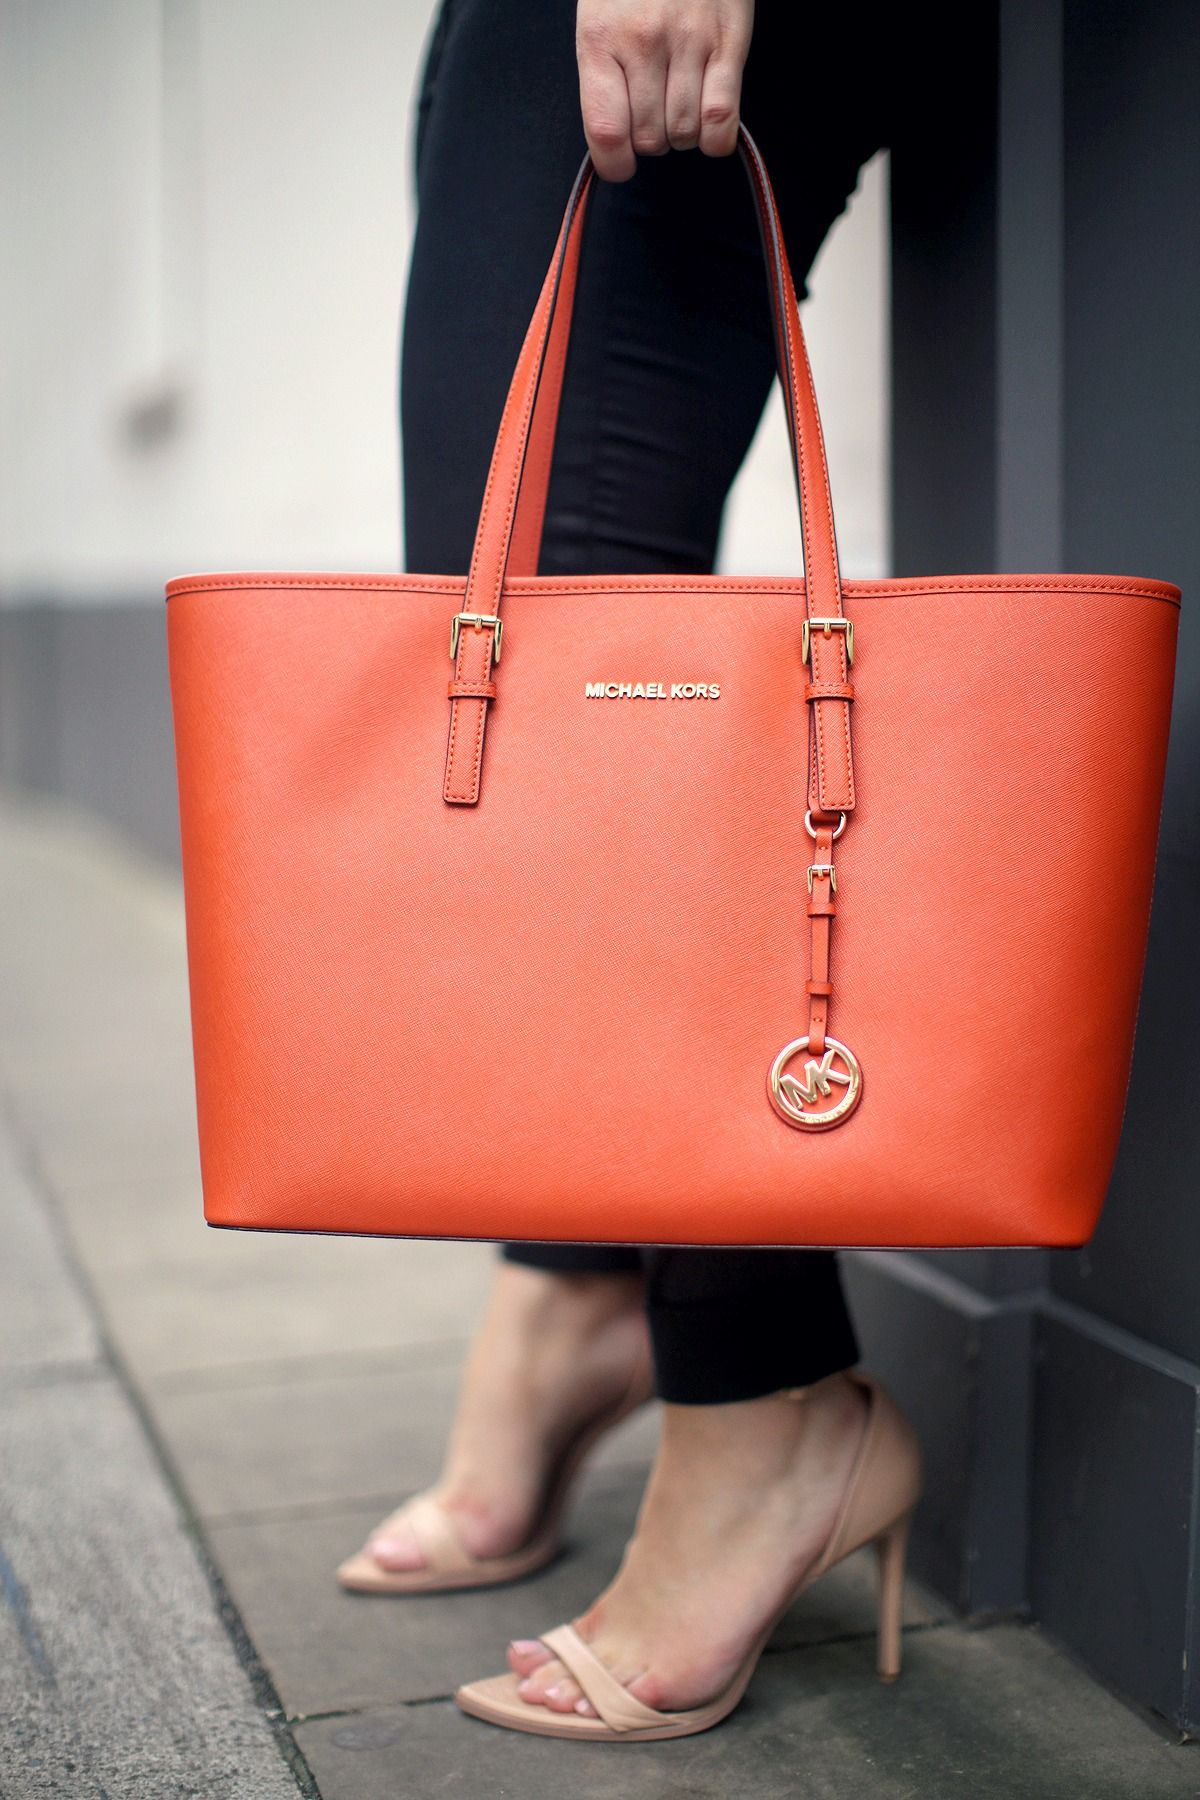 Michael Kors Jetset Tote For The Office I Have This Exact Bag And Love It Color All